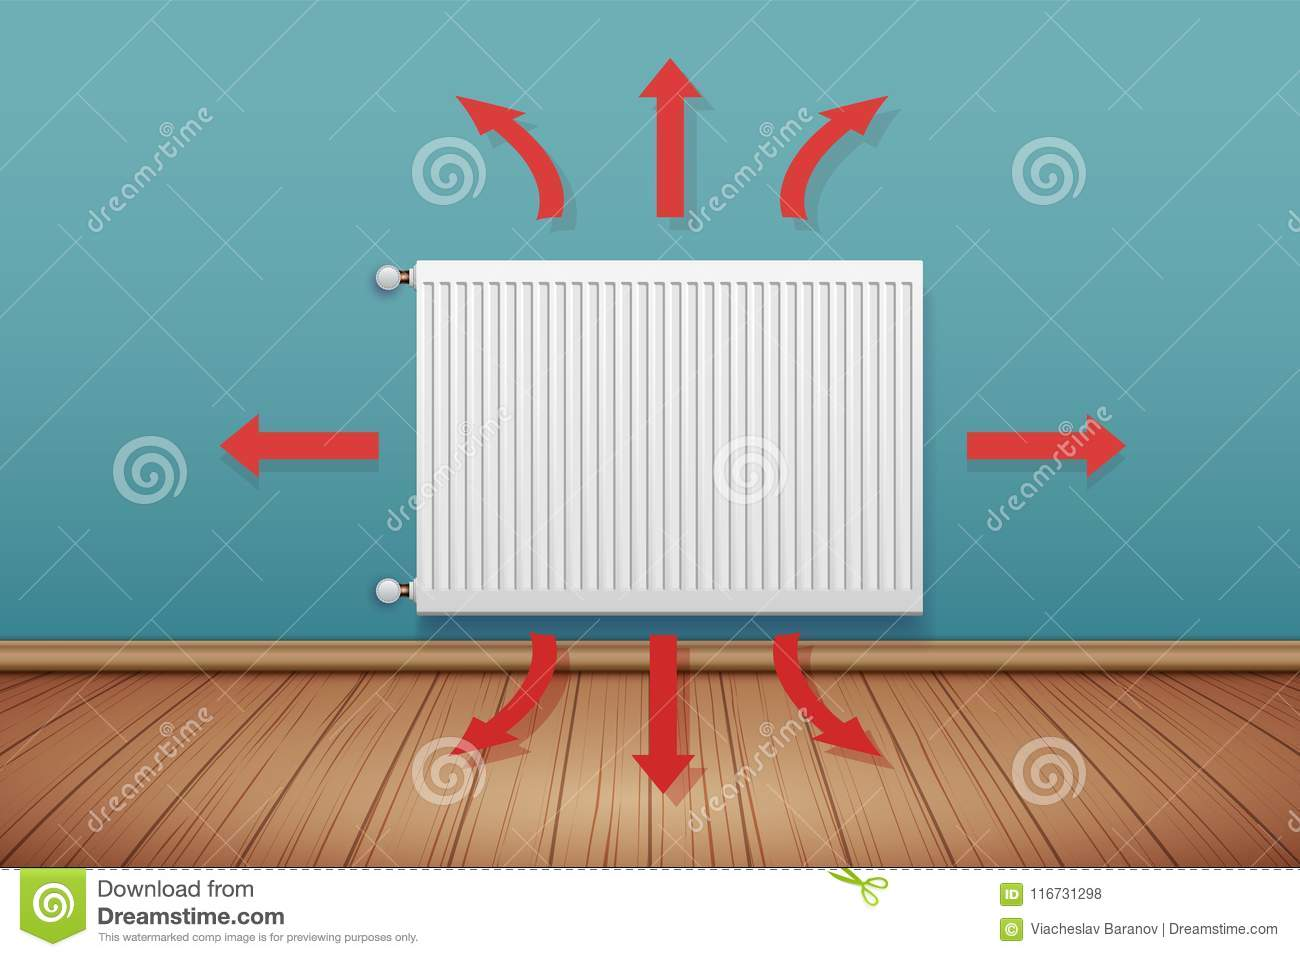 Metal Heating Radiator In Room Stock Vector - Illustration of house ...